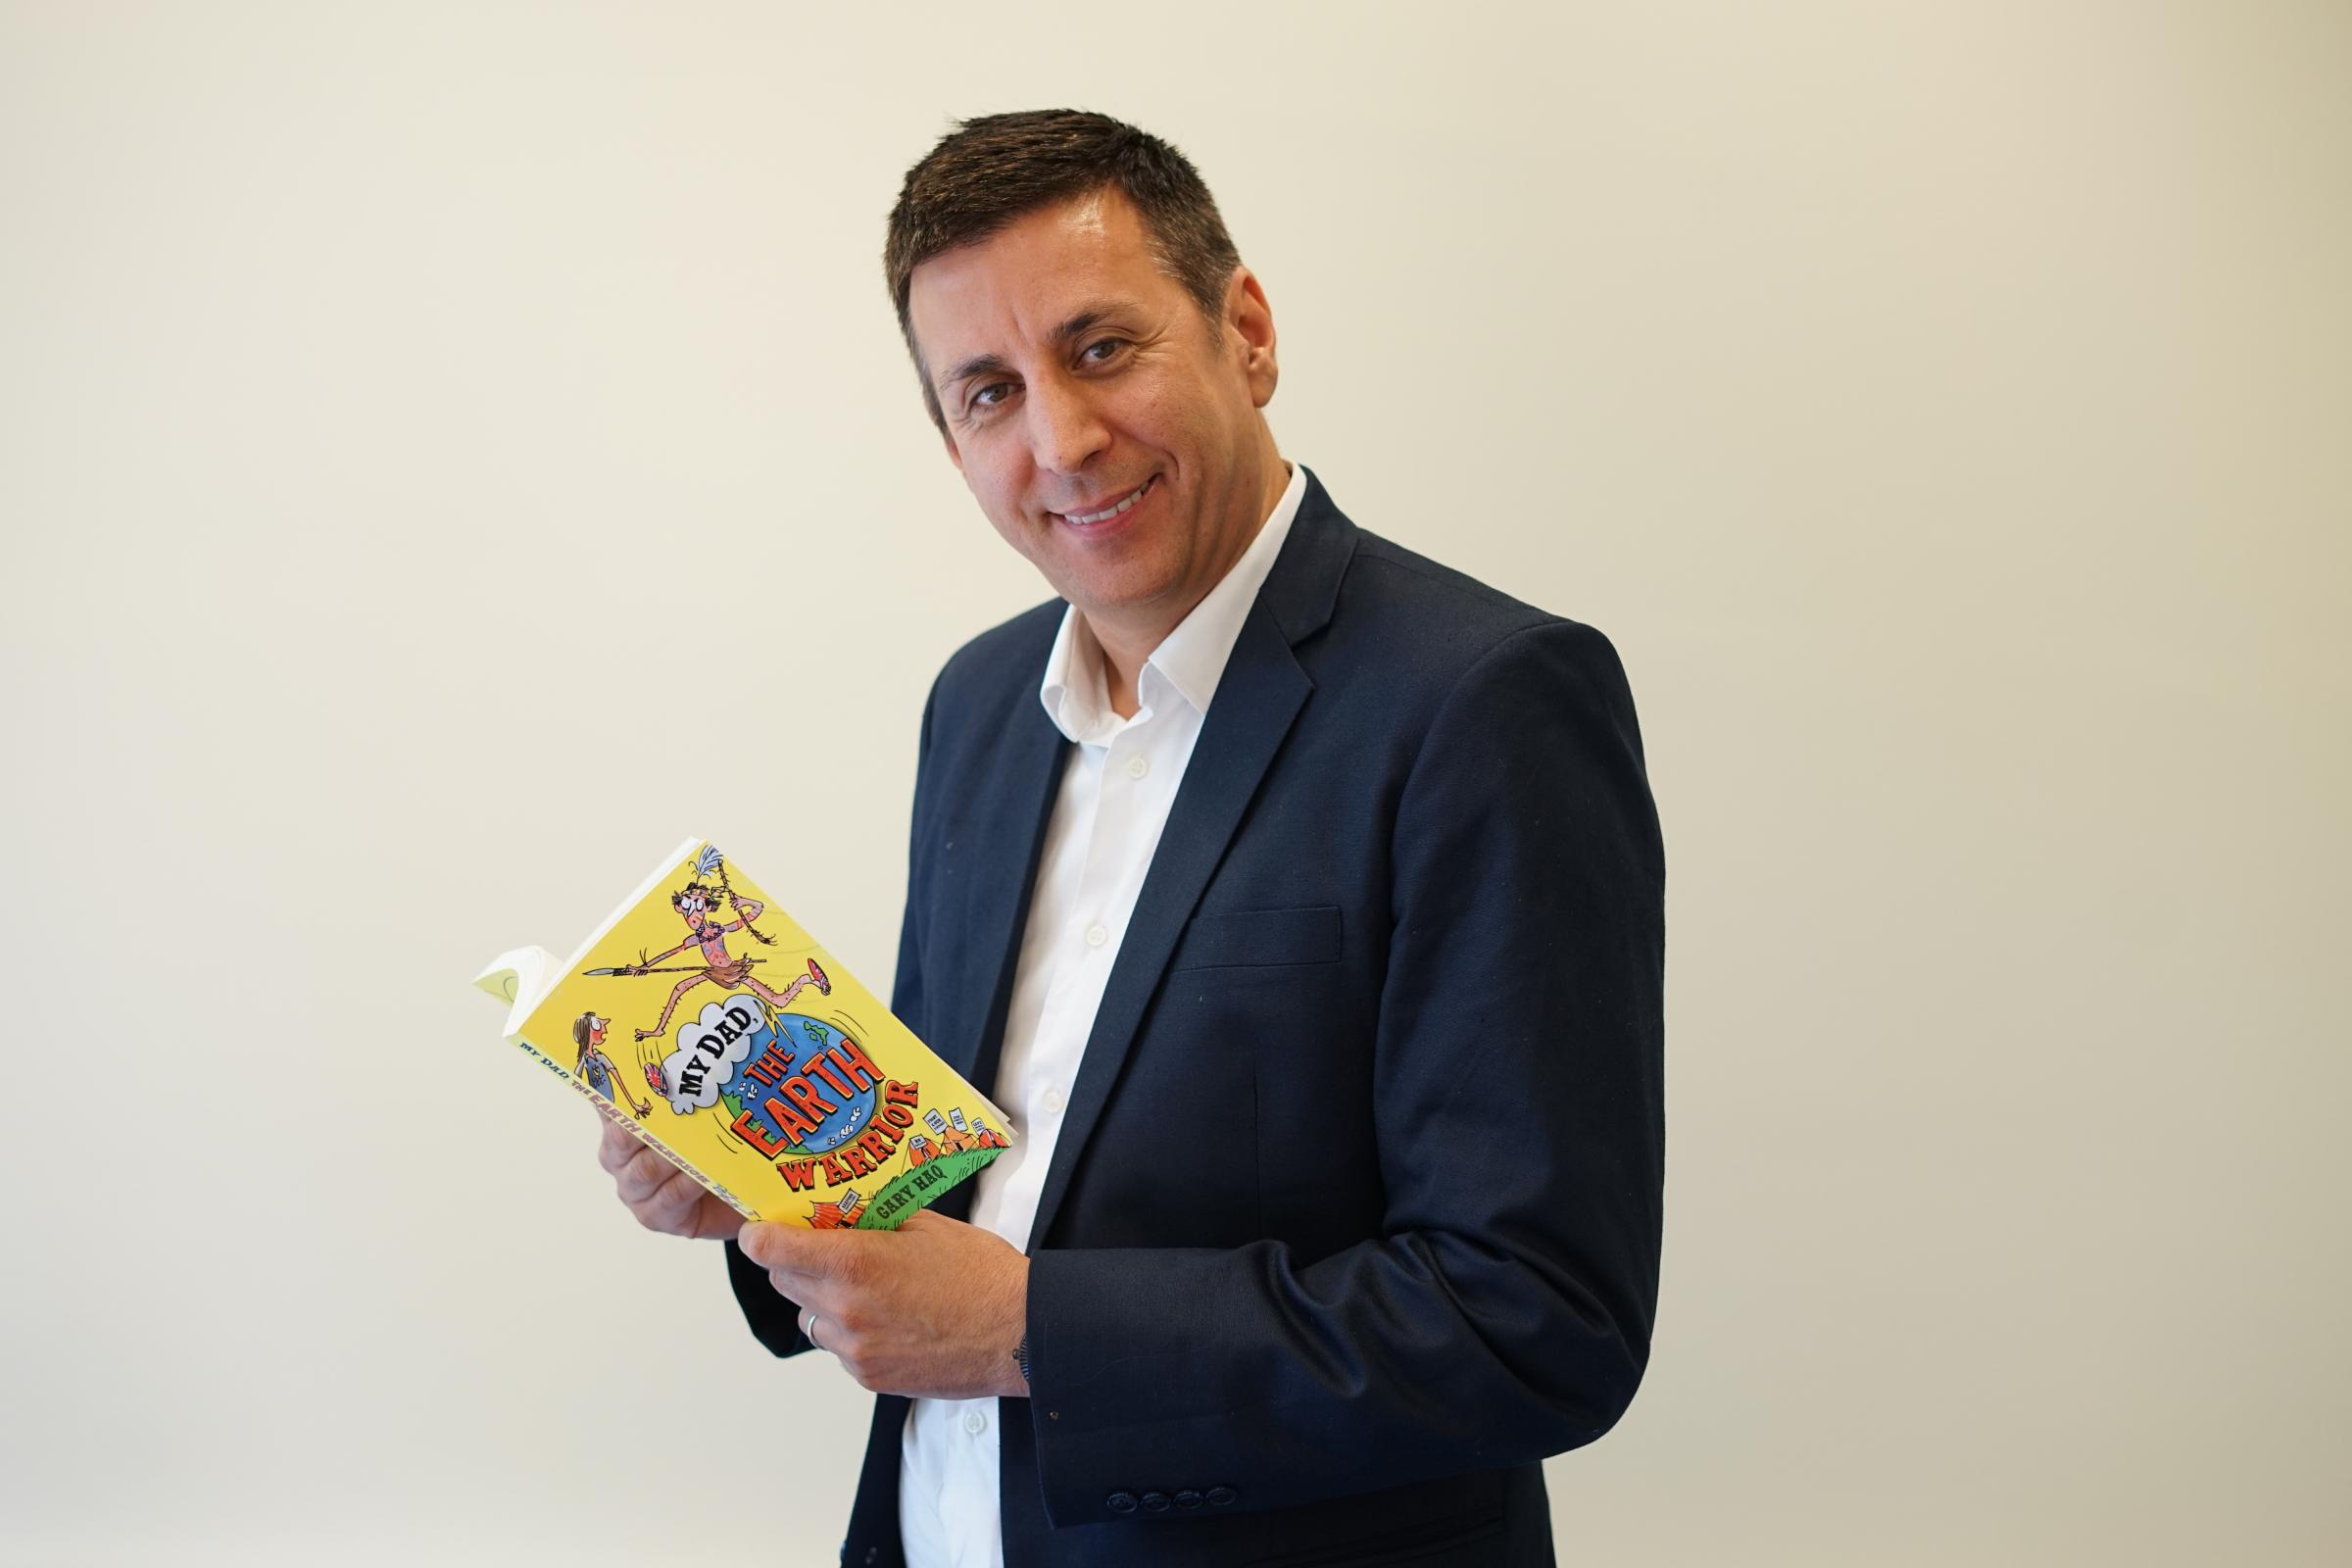 Gary Haq with his new children's book with an environmental message